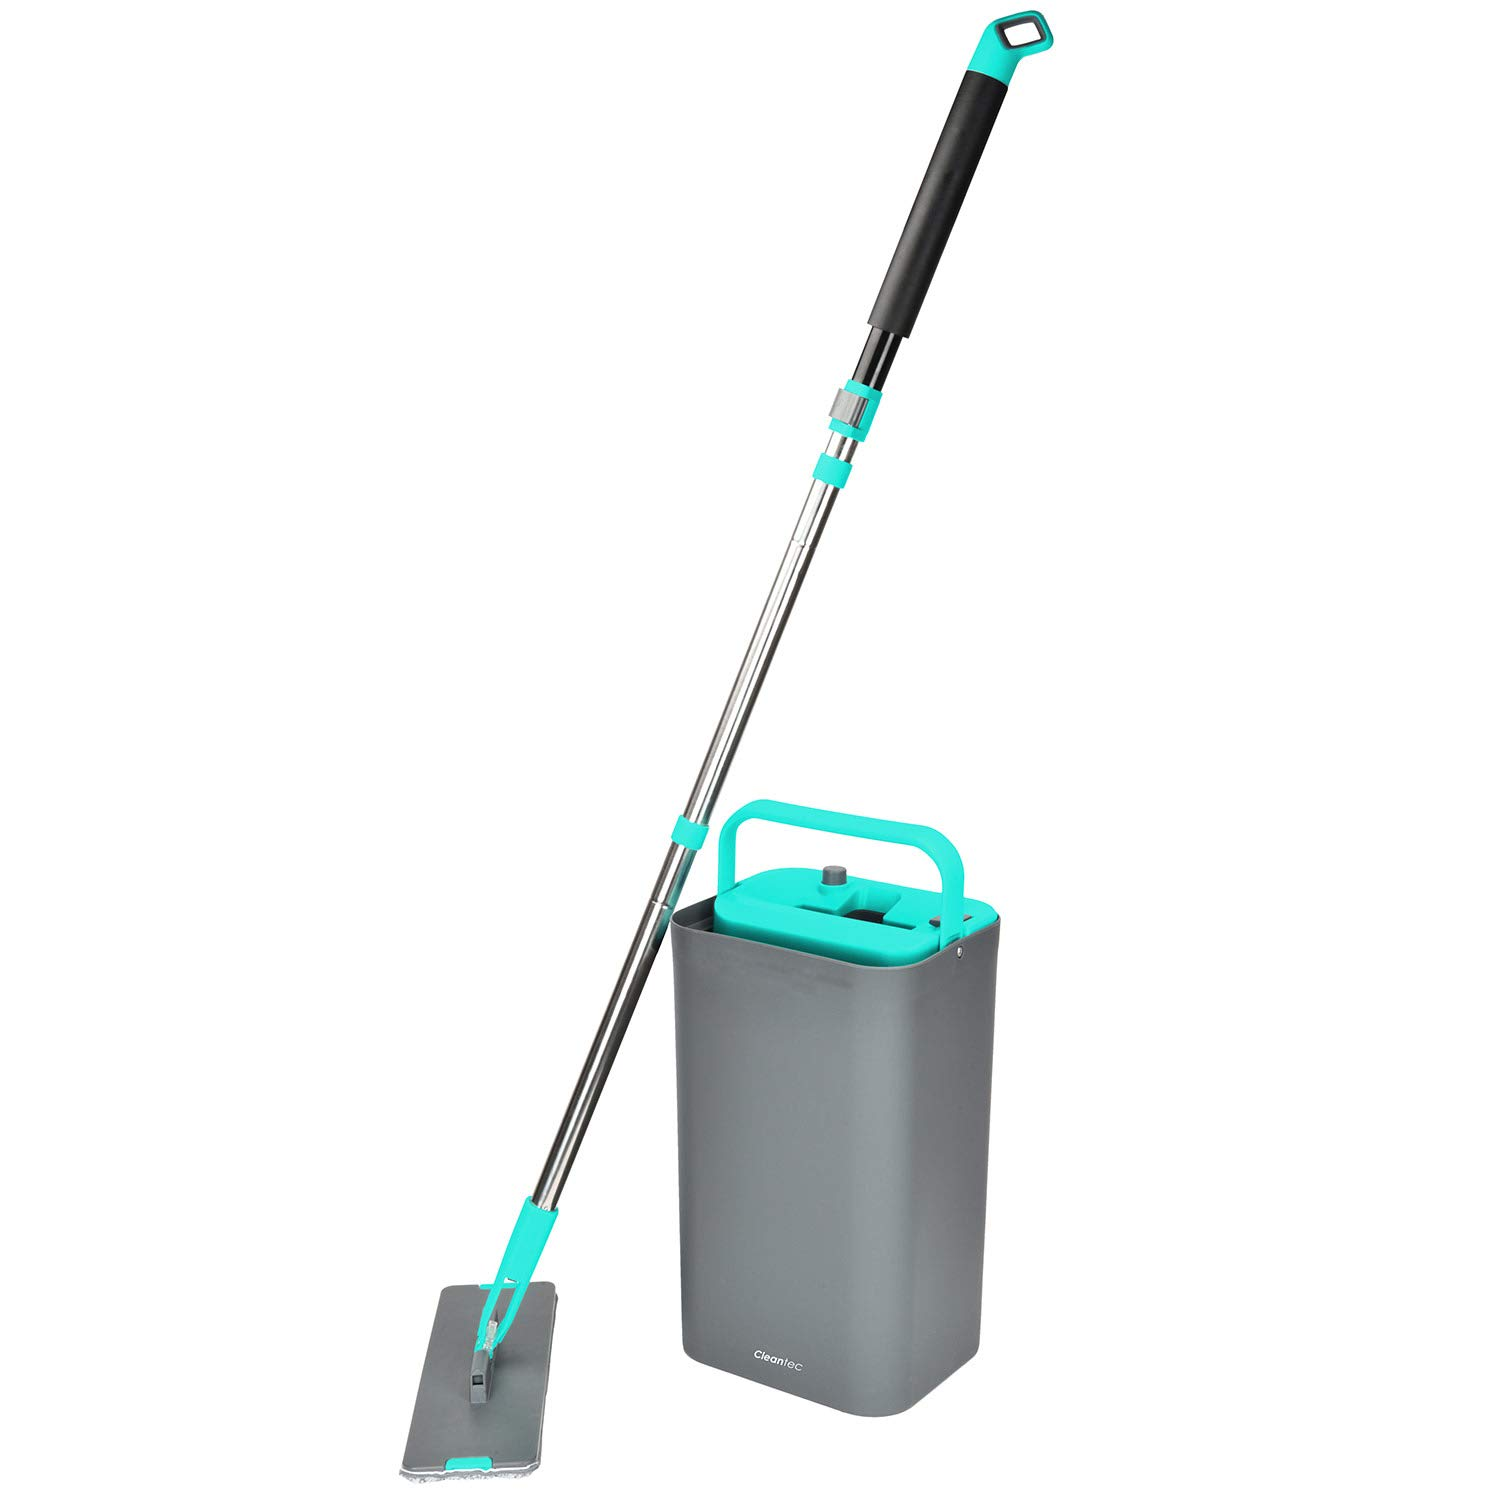 MAGIC FLAT MOP AND BUCKET by Cleantec, 360 Degree Swivel Head, 1.32 Gallon Capacity, Great for Wet-Dry Cleaning, Safe on all Surfaces, Telescopic Wand, Compact Storage, Carry Handle (Grey-Blue)